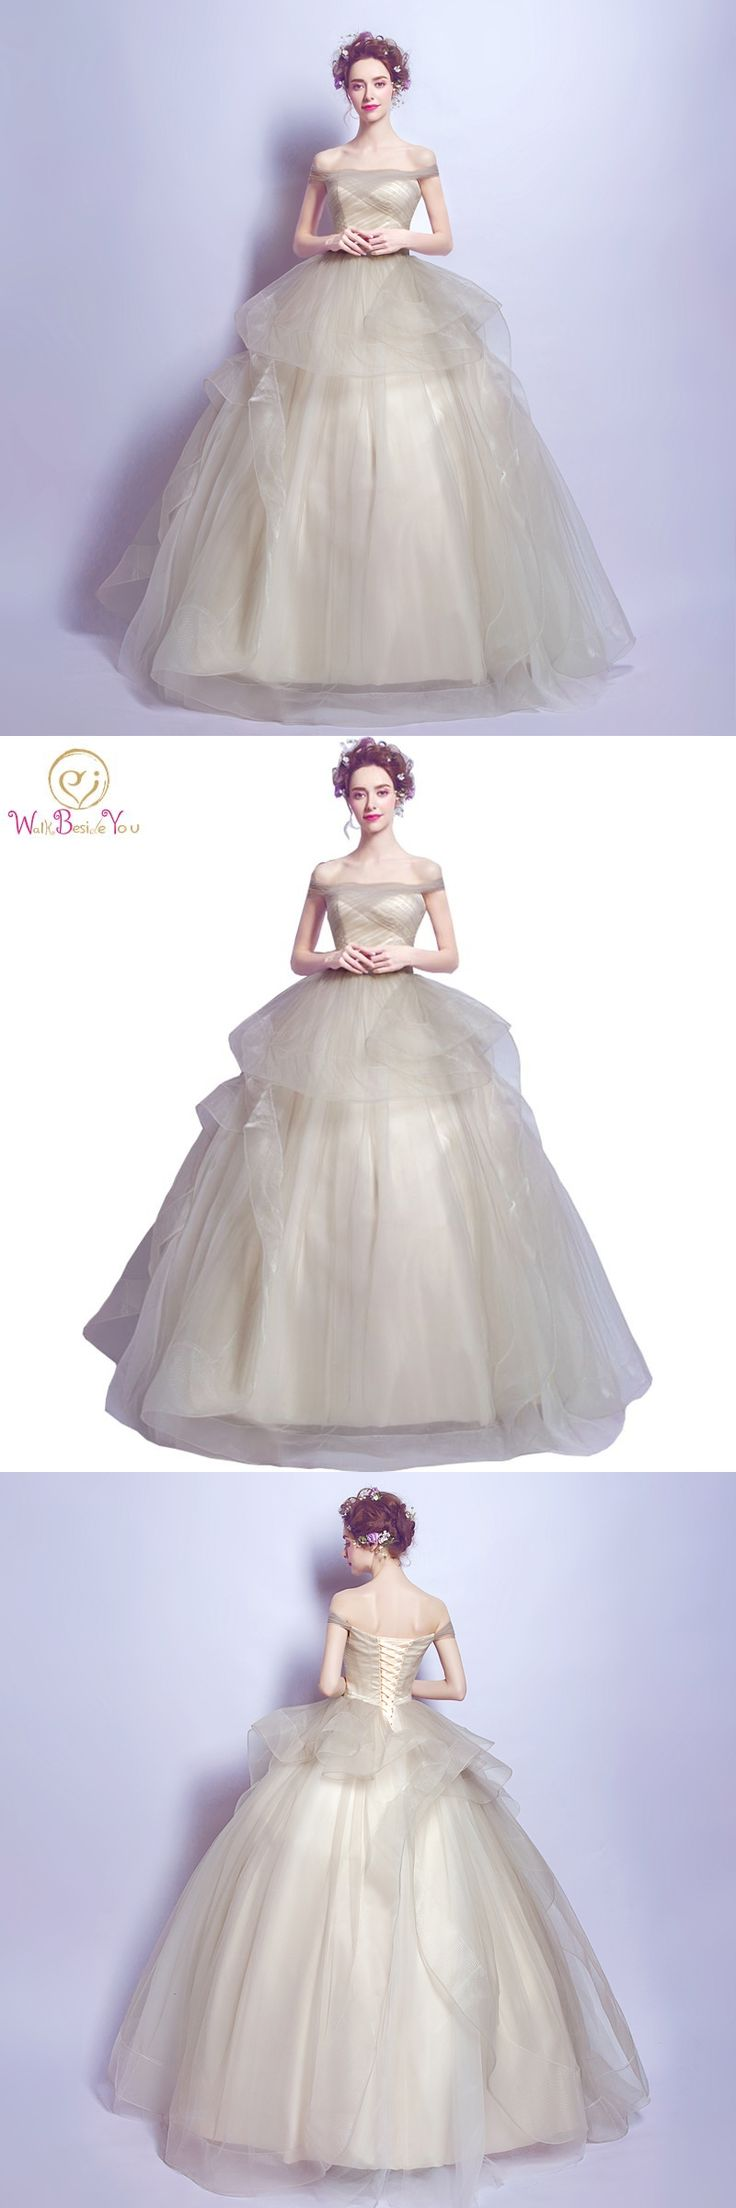 Camel Quinceanera Gowns Off the Shoulder vestidos de quince anos 2017 Puffy Quinceanera Dresses Ball Gown Prom Dress Gowns